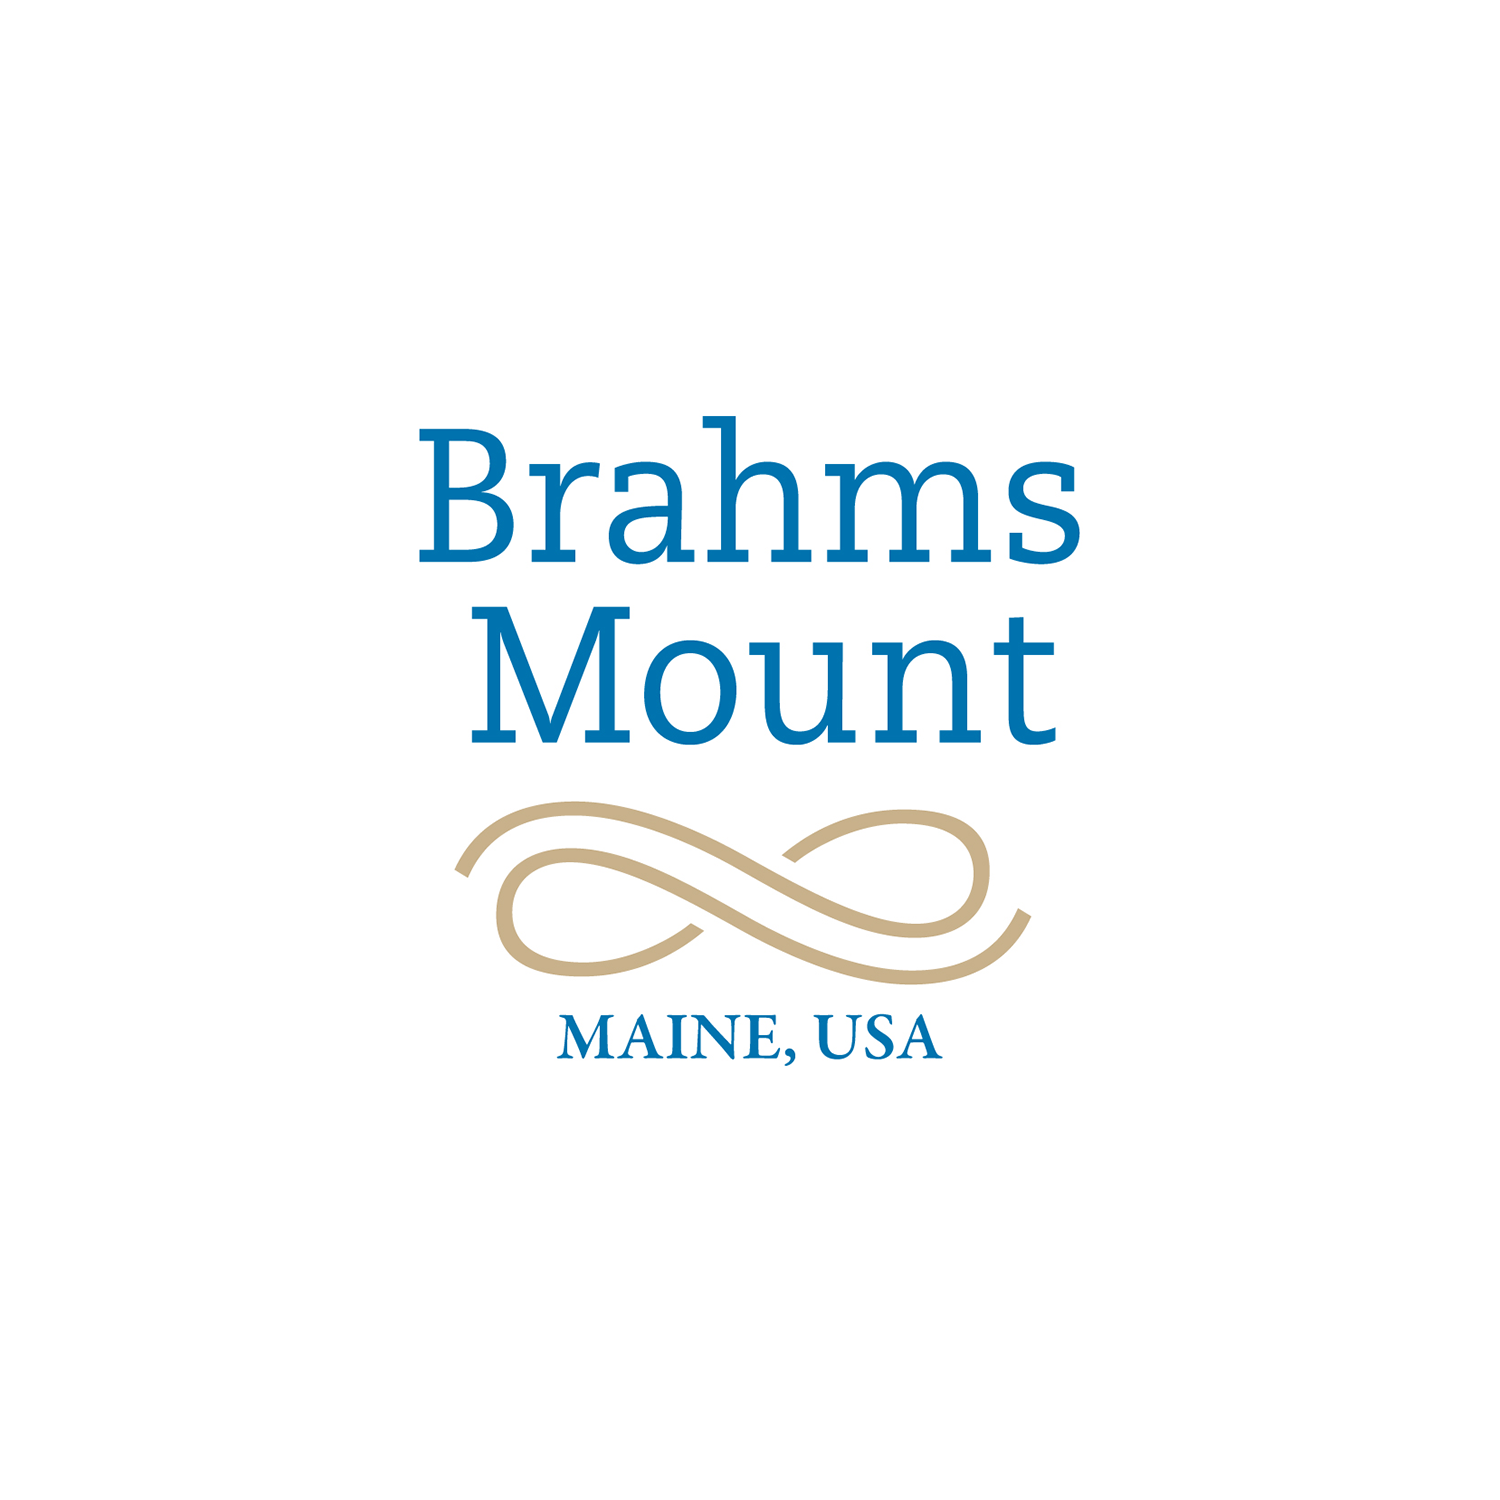 Brahms Mount - According to my designer Dan Scotti, they have the best cotton bed blankets around!